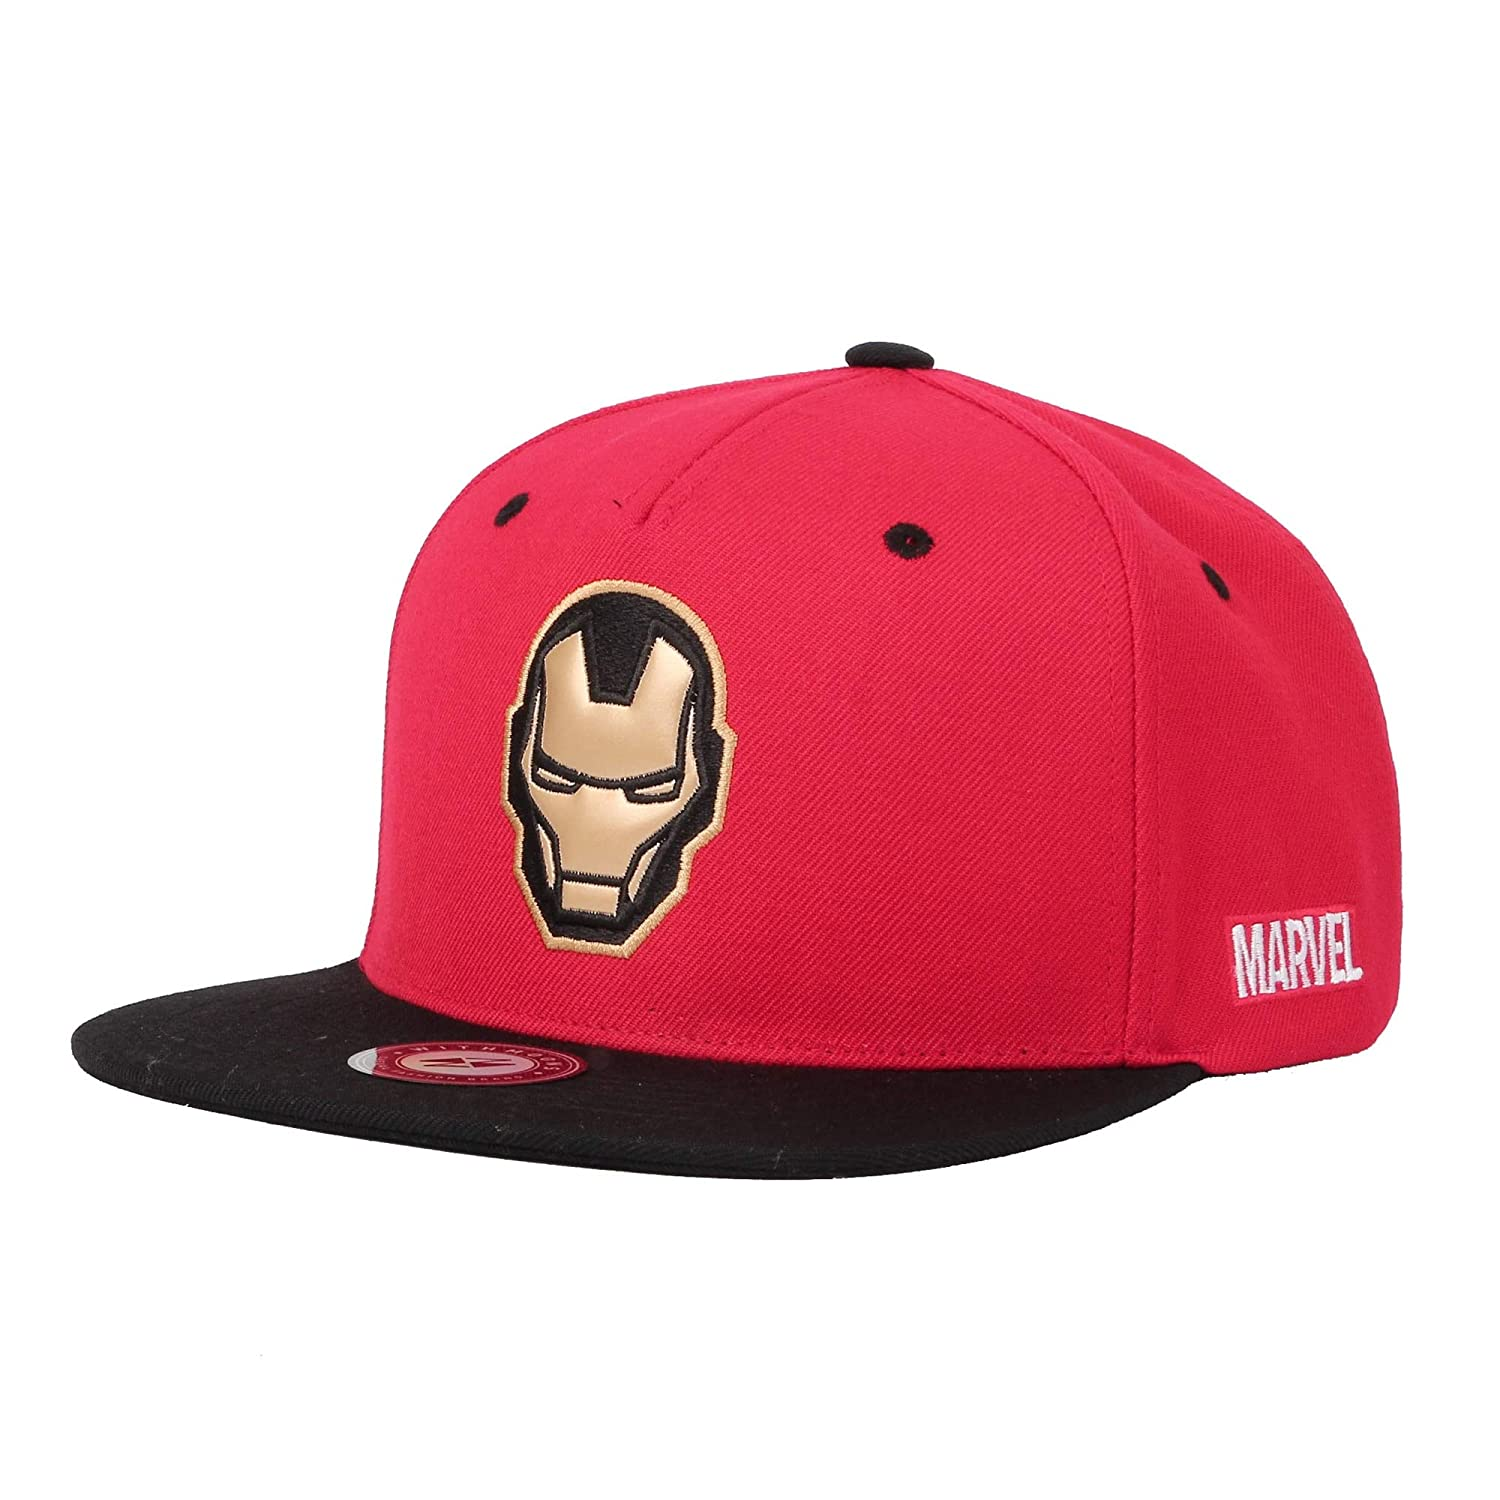 WITHMOONS Marvel Avengers Infinity War Iron Man Baseball Cap HL21113 (Red)  at Amazon Men s Clothing store  9a09d374499